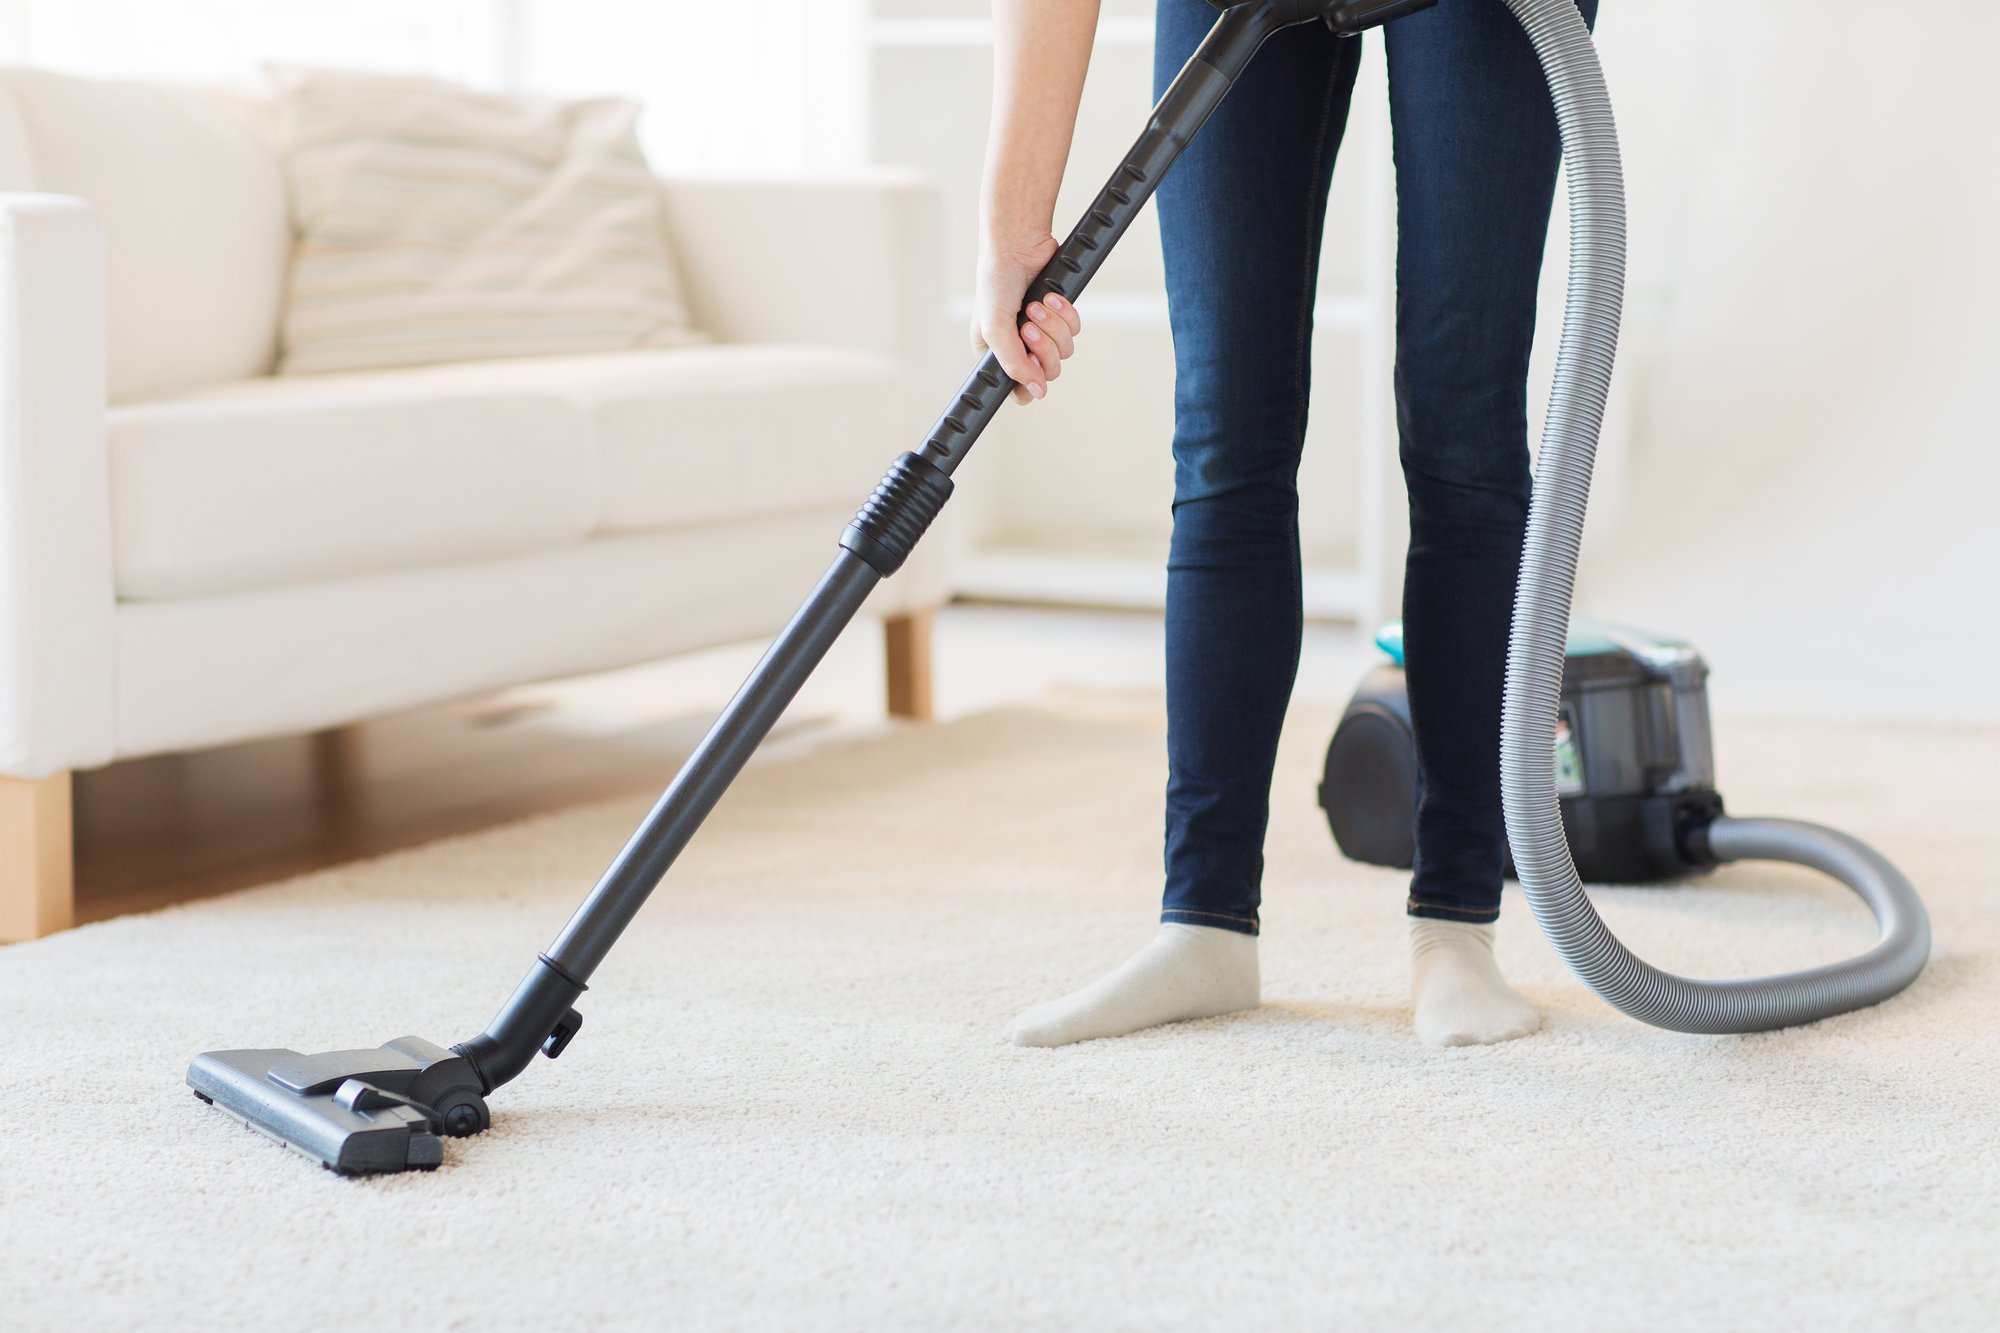 6 of The Secretly Dirty Items in Your Home